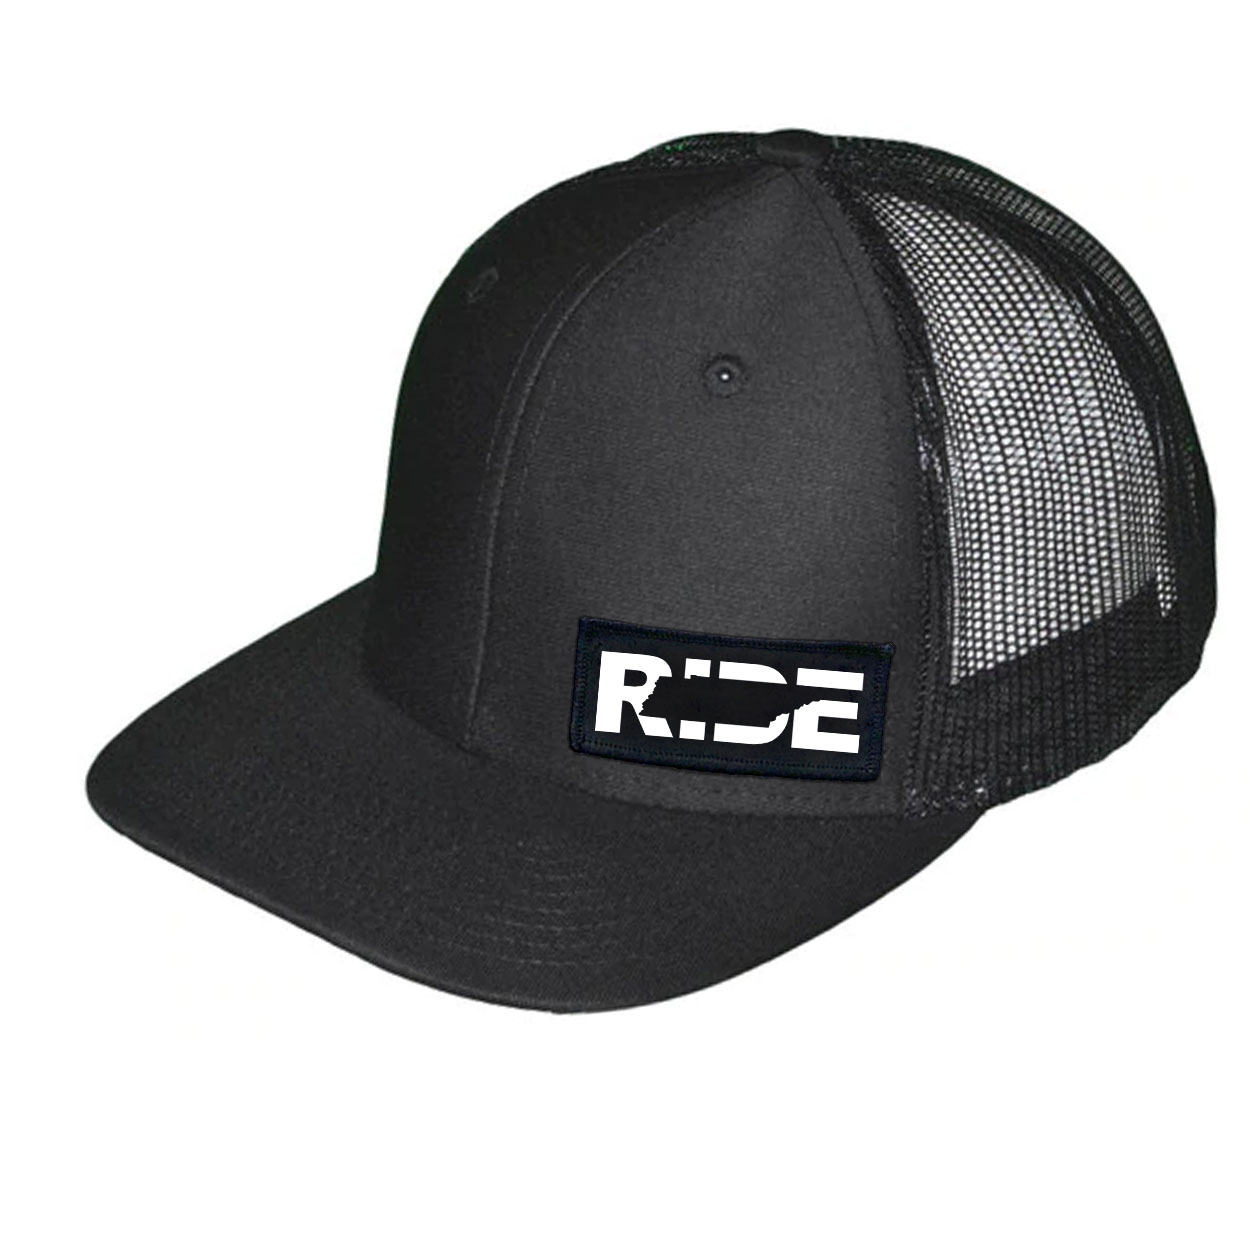 Ride Tennessee Night Out Woven Patch Snapback Trucker Hat Black (White Logo)